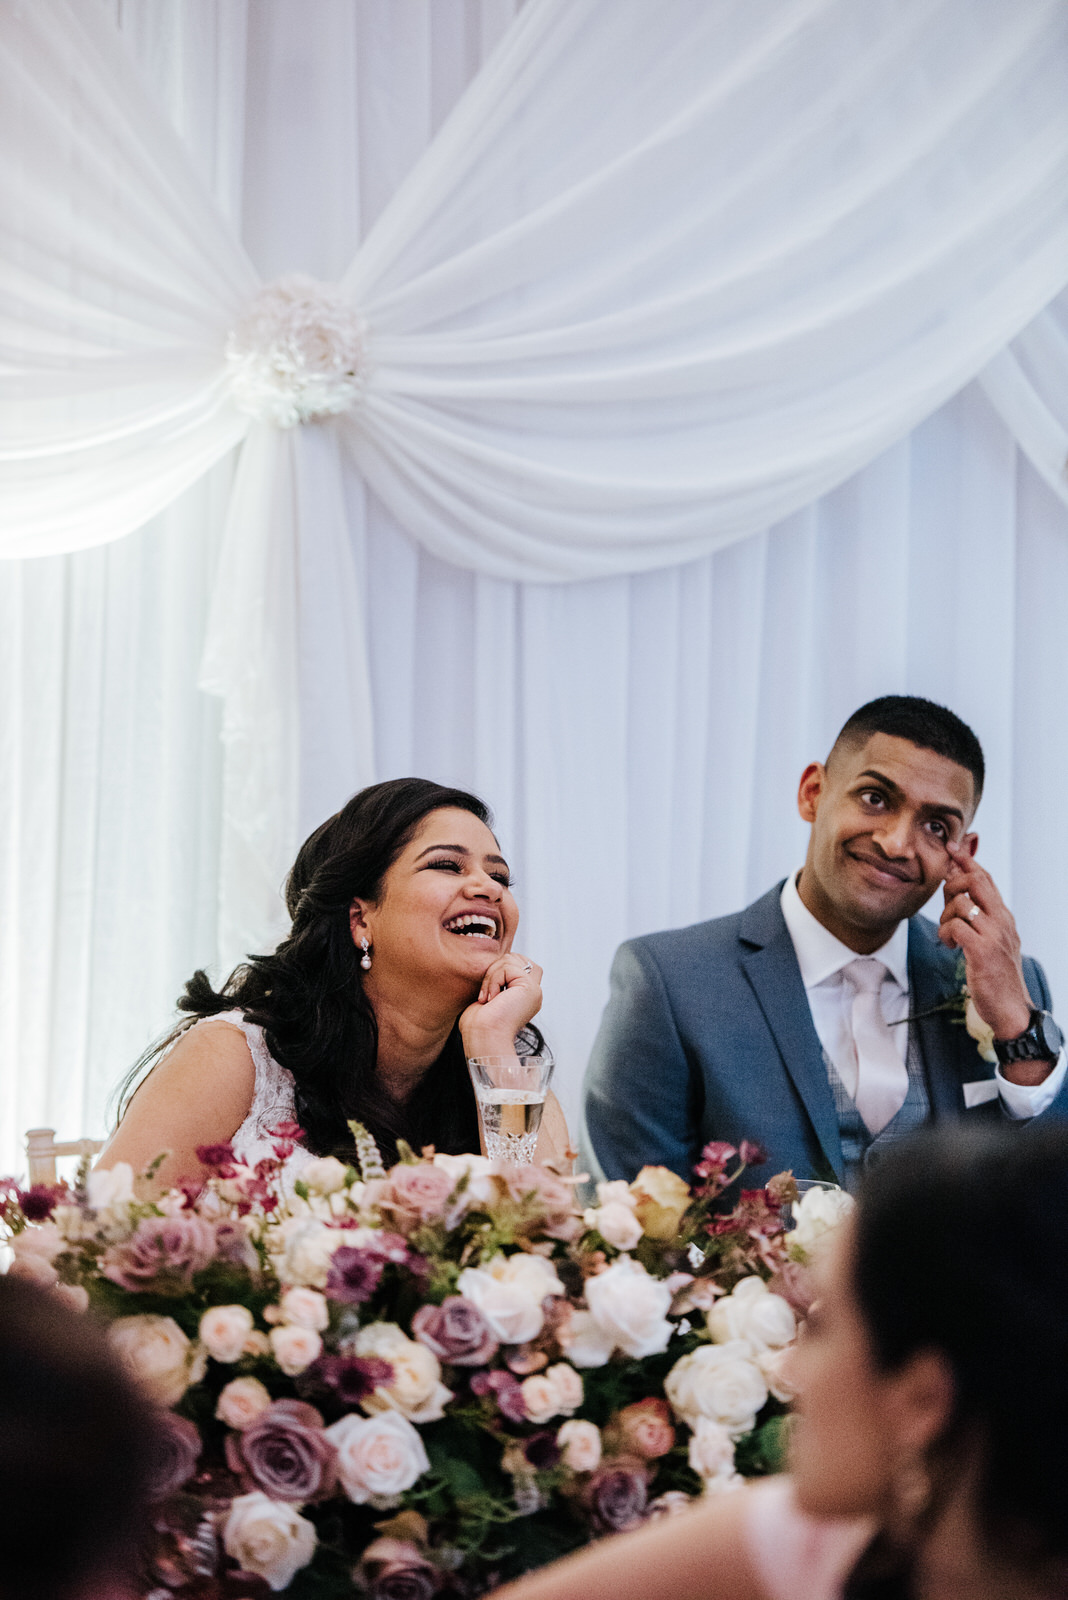 Bride and groom laugh while speaking to guests